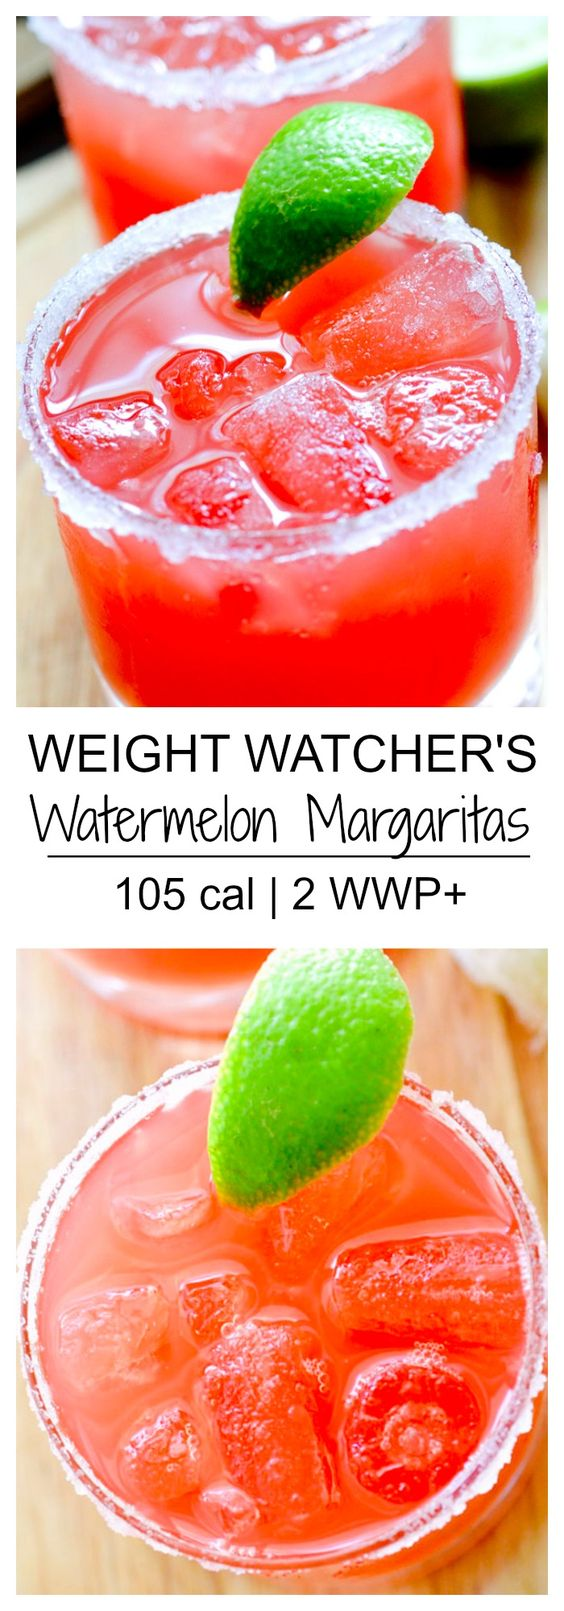 MUST SIP: I'm not typically a drinker, but in the summer I love a refreshing, fruity cocktail. The only problem is that most of them are loaded with sugar. That's why I like making these AMAZING watermelon margaritas! Get the recipe here.